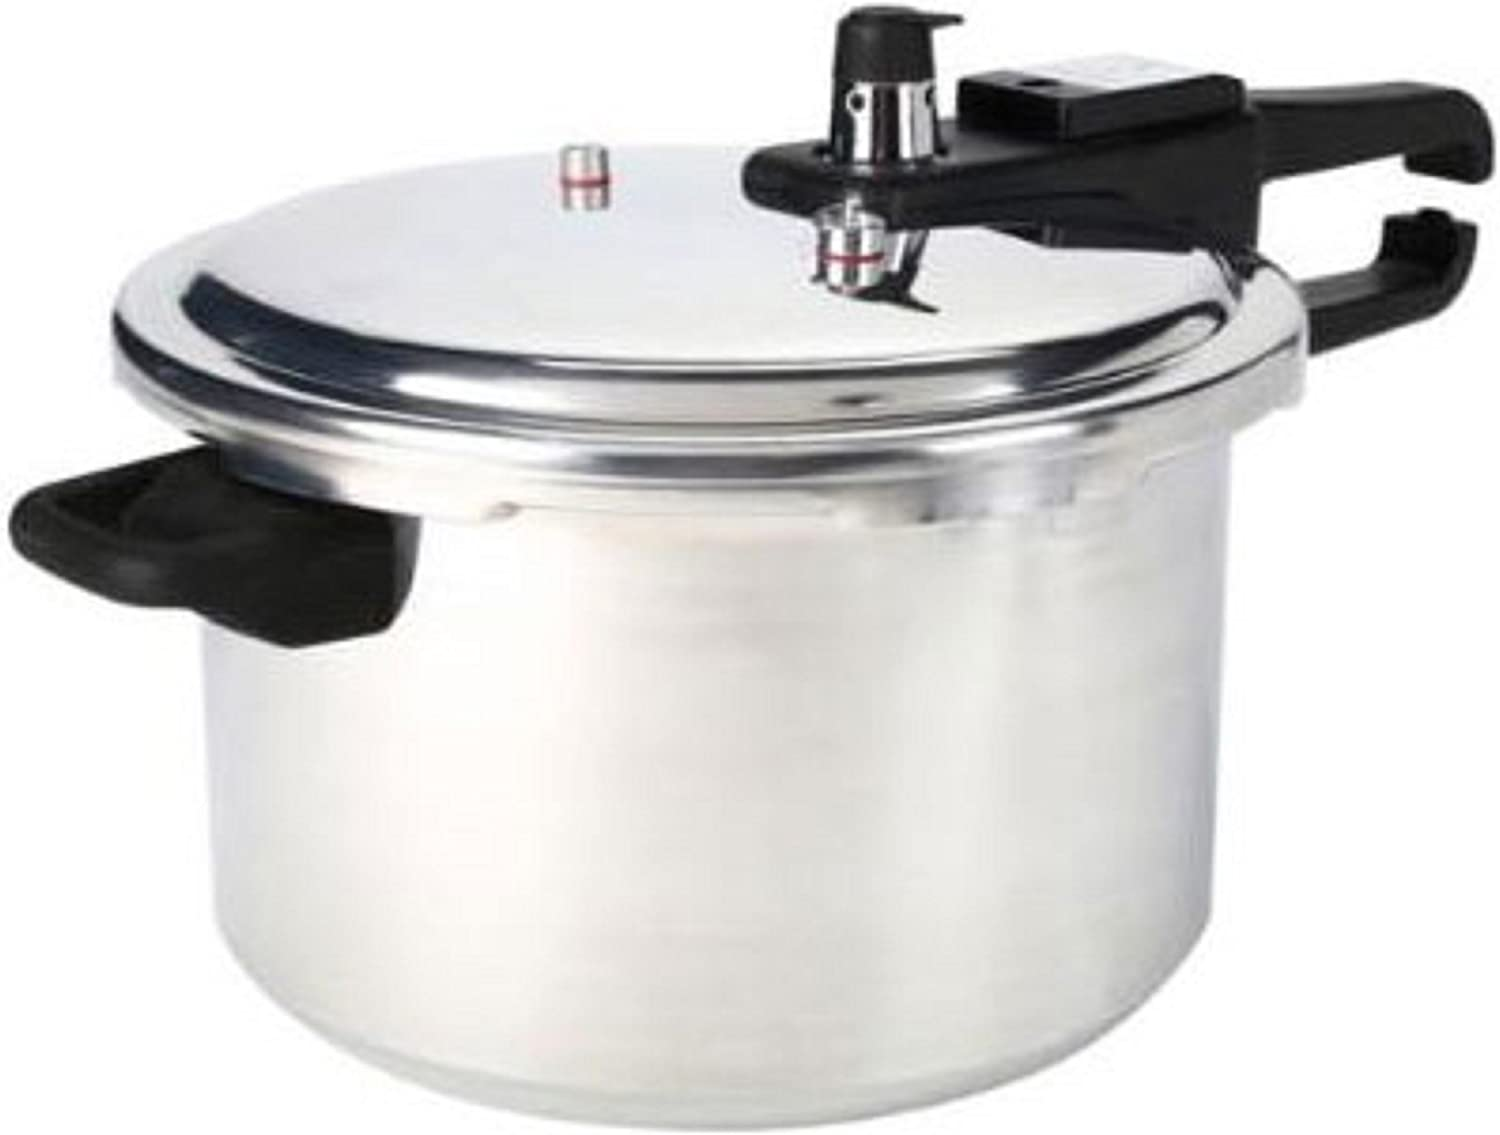 Tayama A-26-09-80 9 Liter Pressure Cooker,